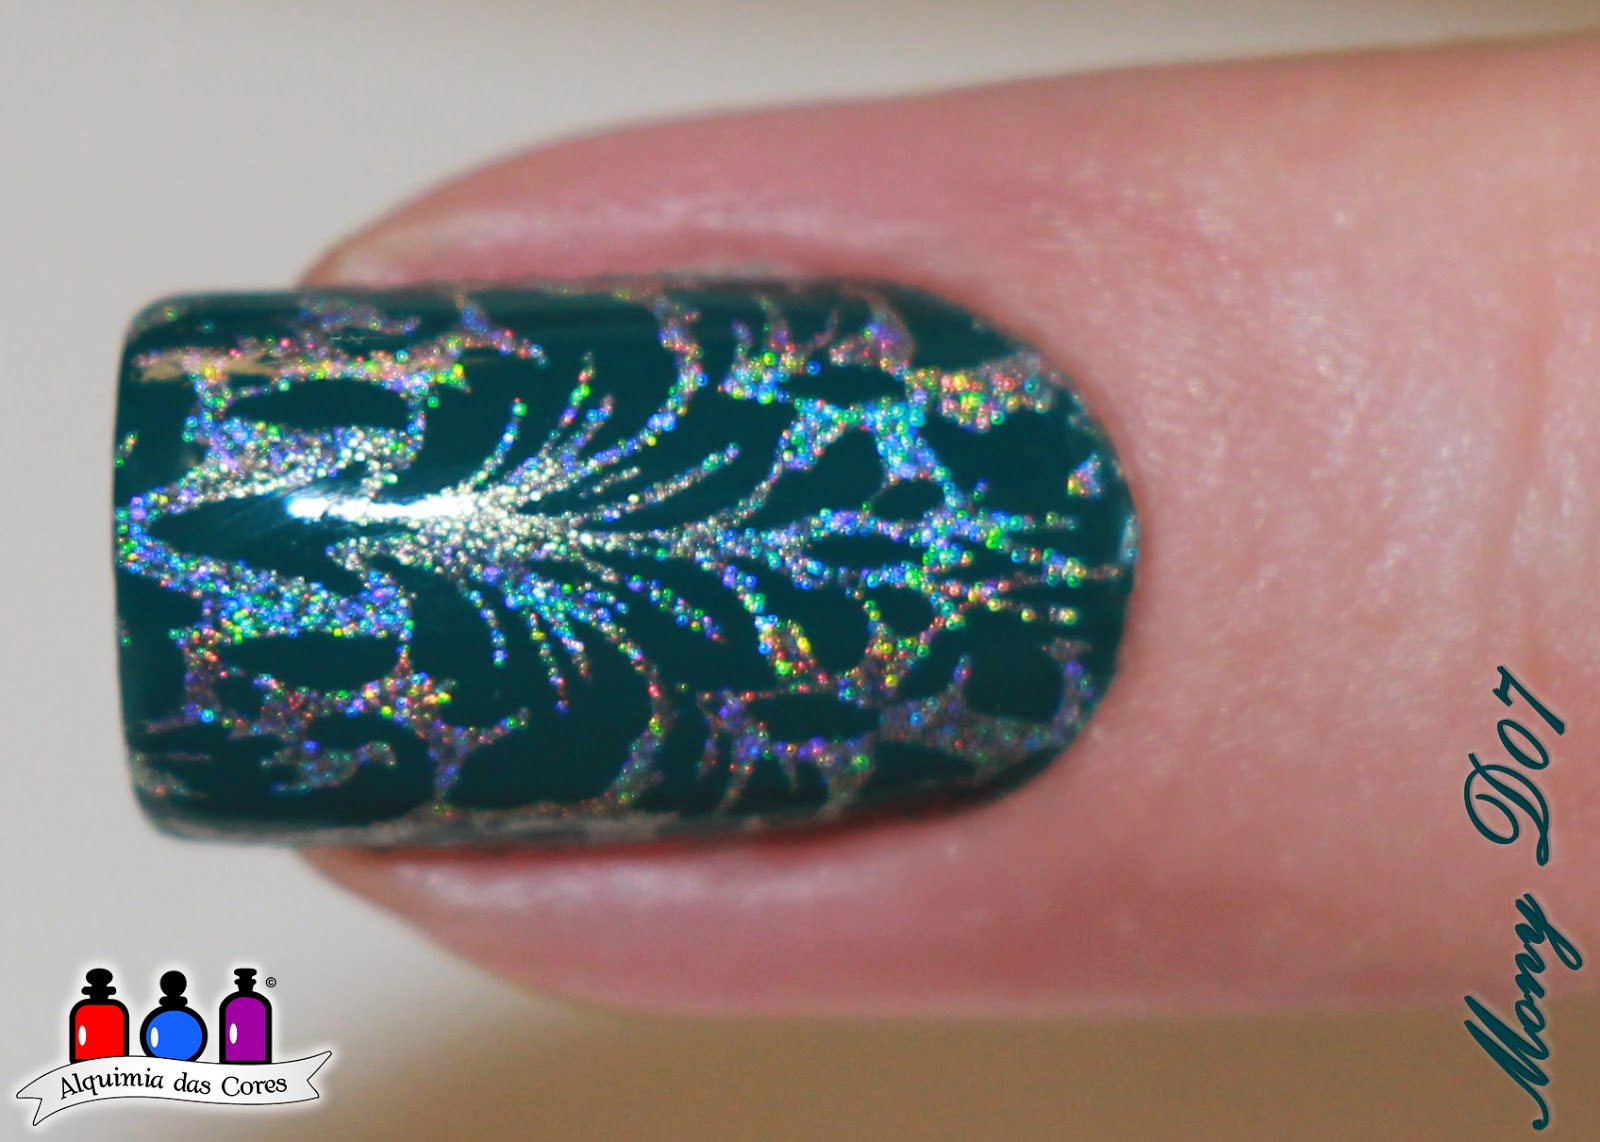 Bourjois, God Save the Green,Placa Decor Unhas, carimbada, esmalte, holográfico, harp on it, color club, seche vite, Simone D07, Mony D07